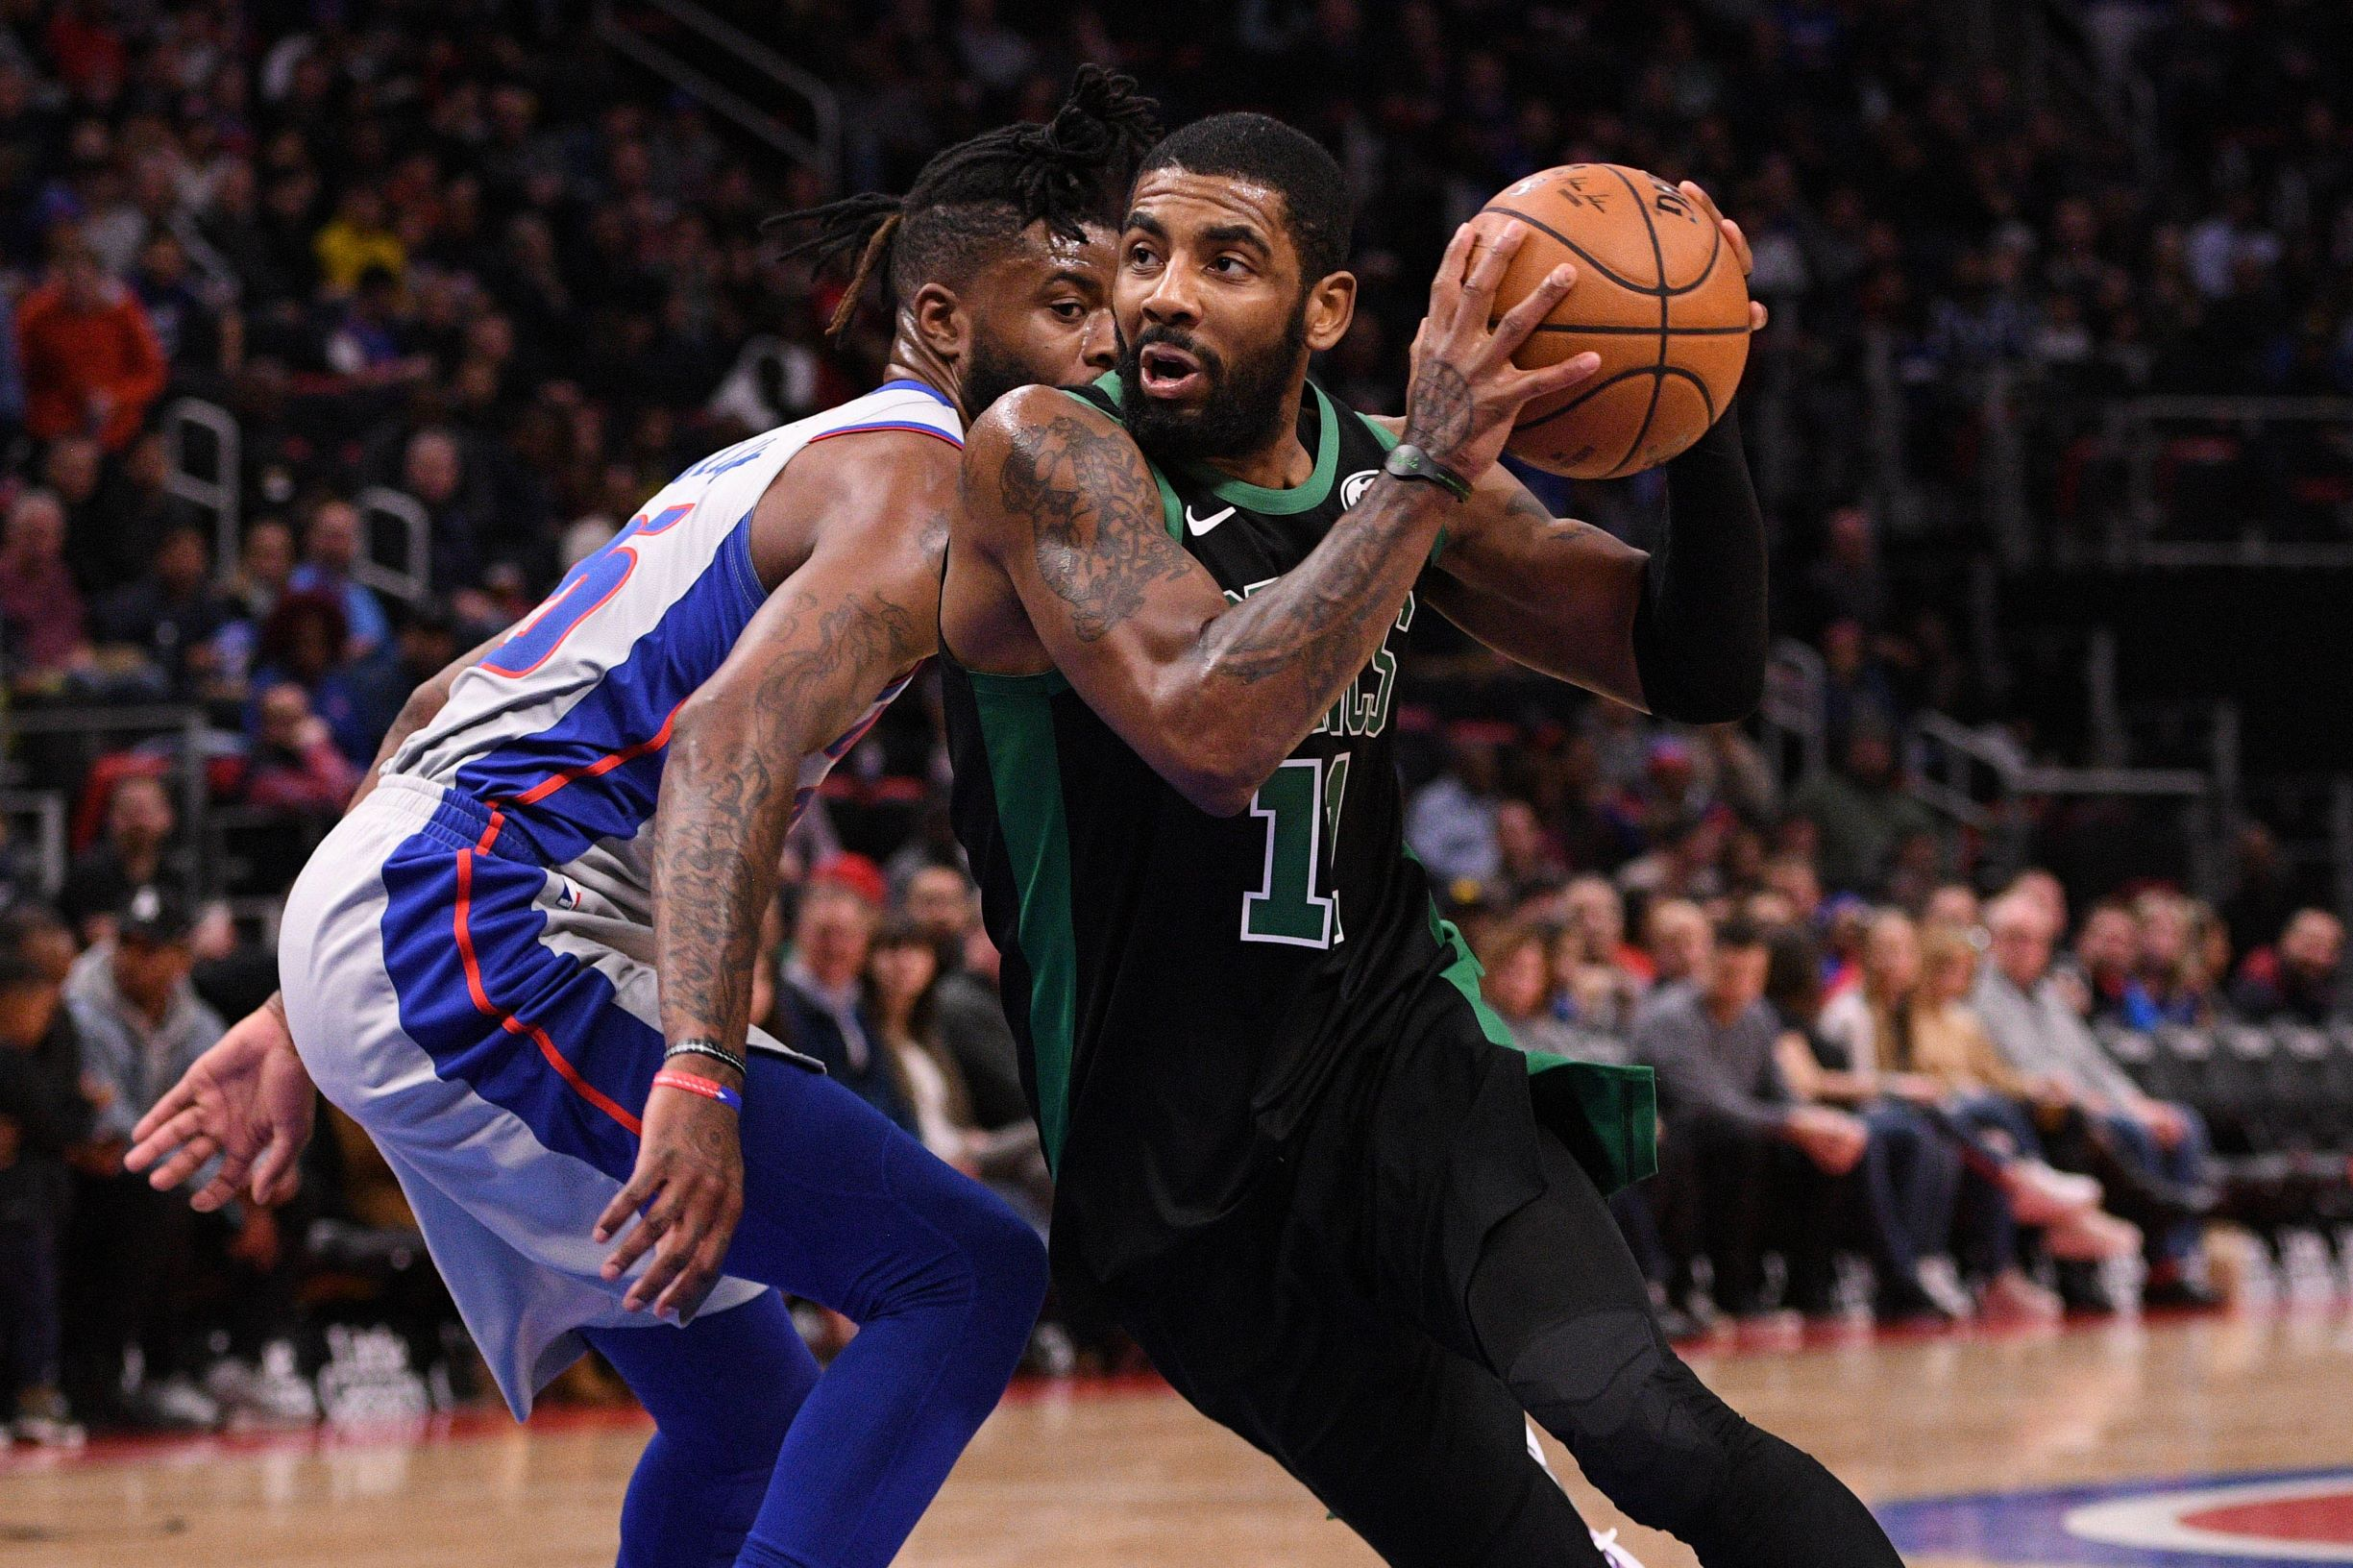 Statistically, Kyrie Irving is one of best playoff performers in NBA history